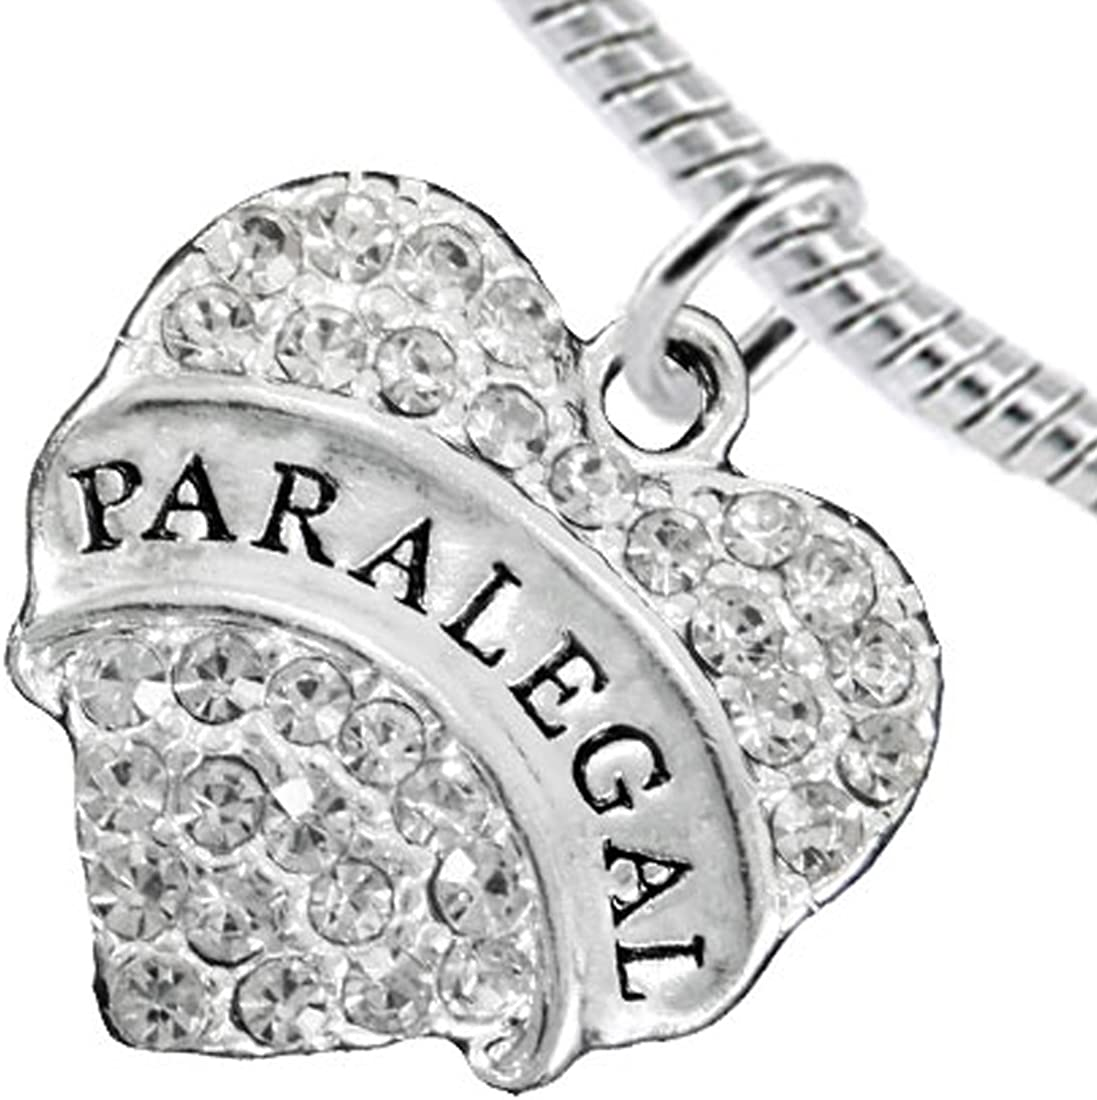 Cardinali Jewelry Paralegal Heart Charm Bracelet Hypoallergenic, Safe, Nickel, Lead & Cadmium Free!